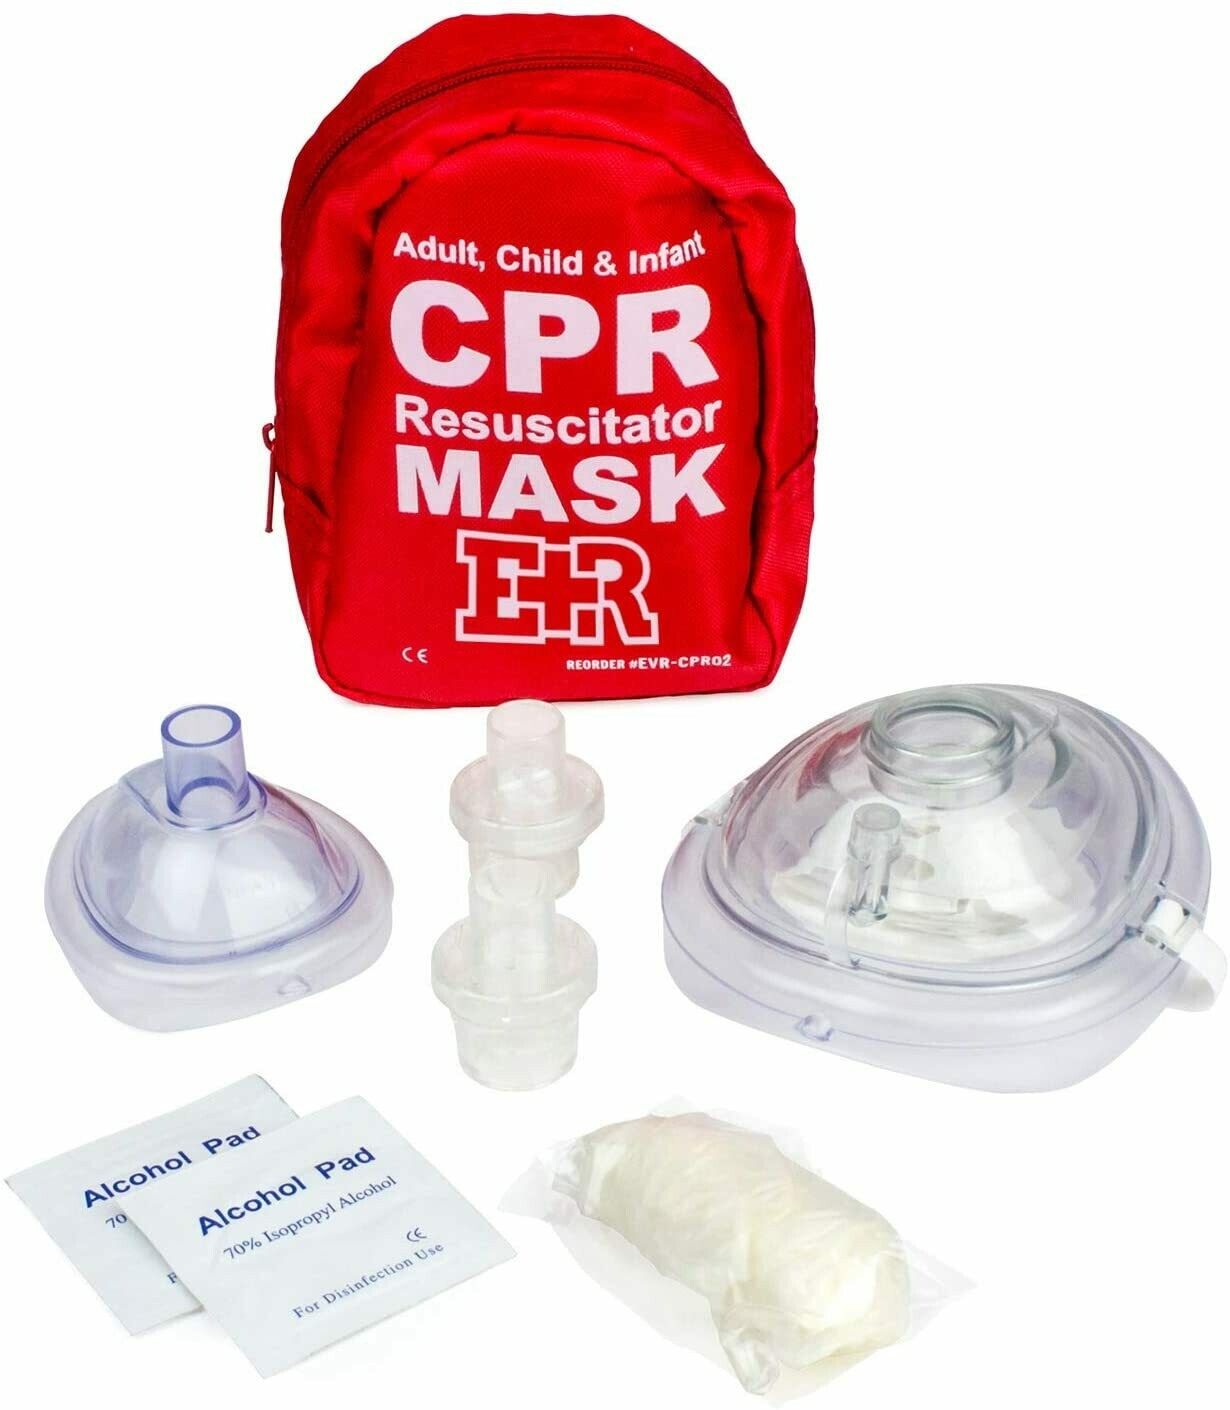 Adult and Infant CPR Mask Combo Kit